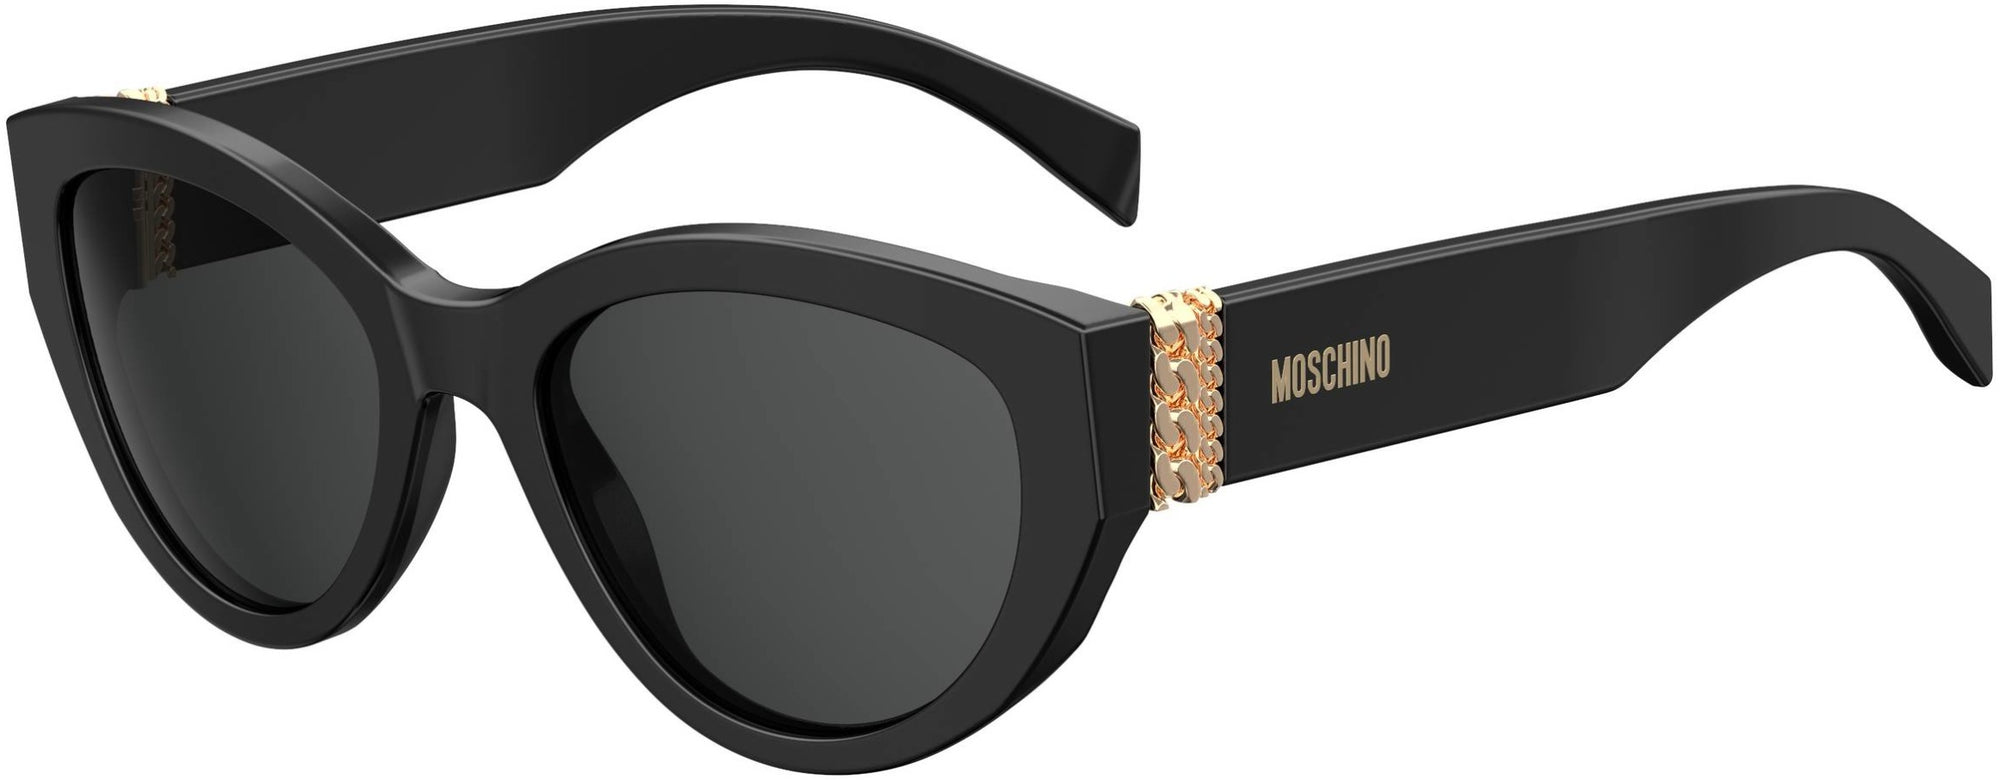 Givenchy MOS 012/S Oval Modified Sunglasses